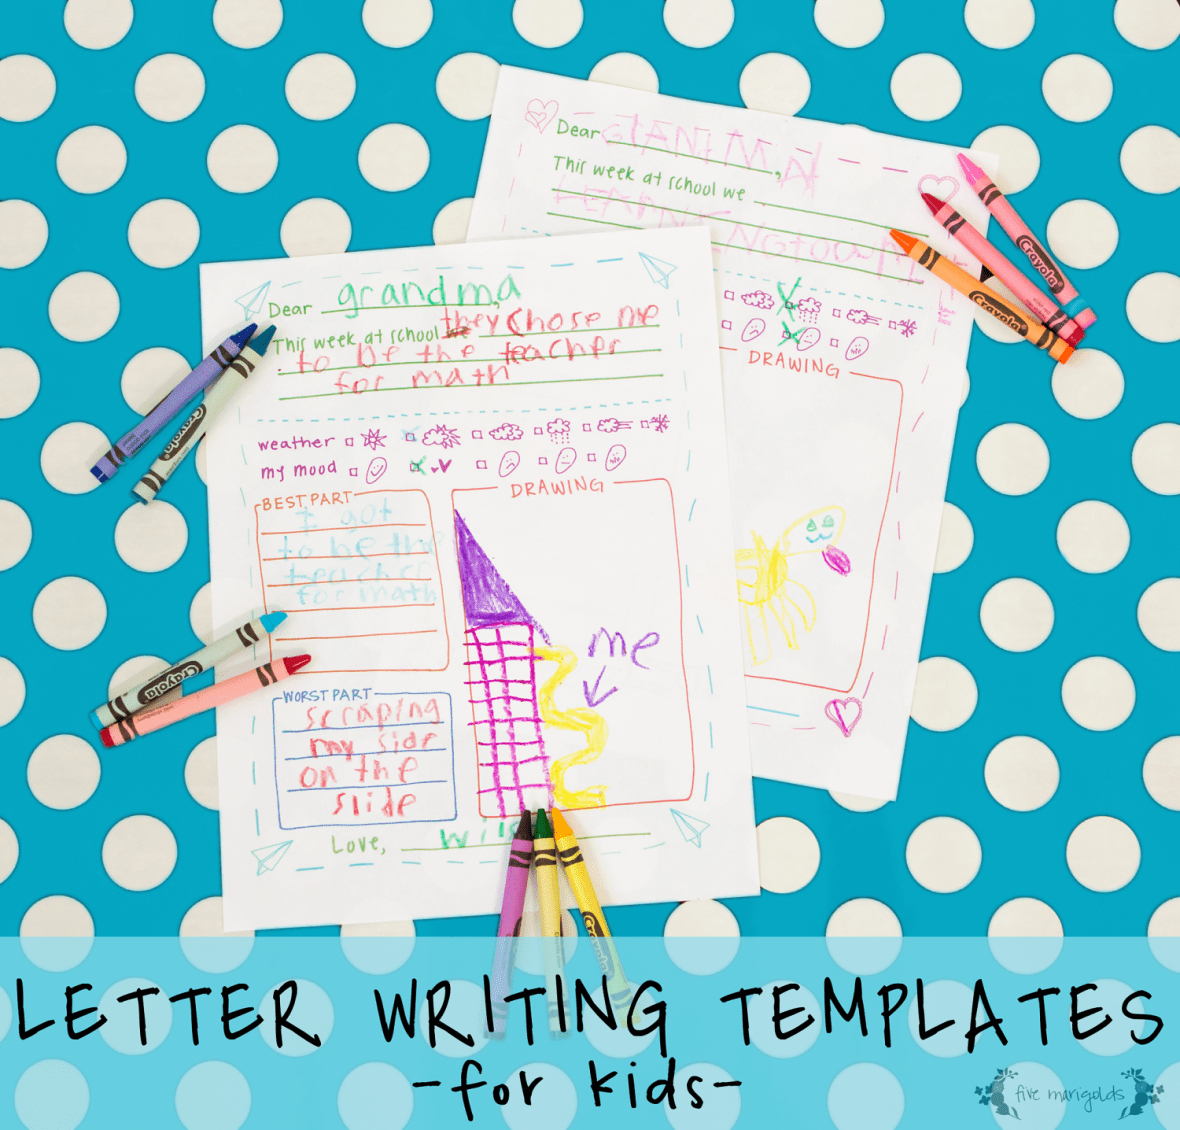 Pen Pal Letter Template New Free Printable Letter Writing Templates for Grandma Pen